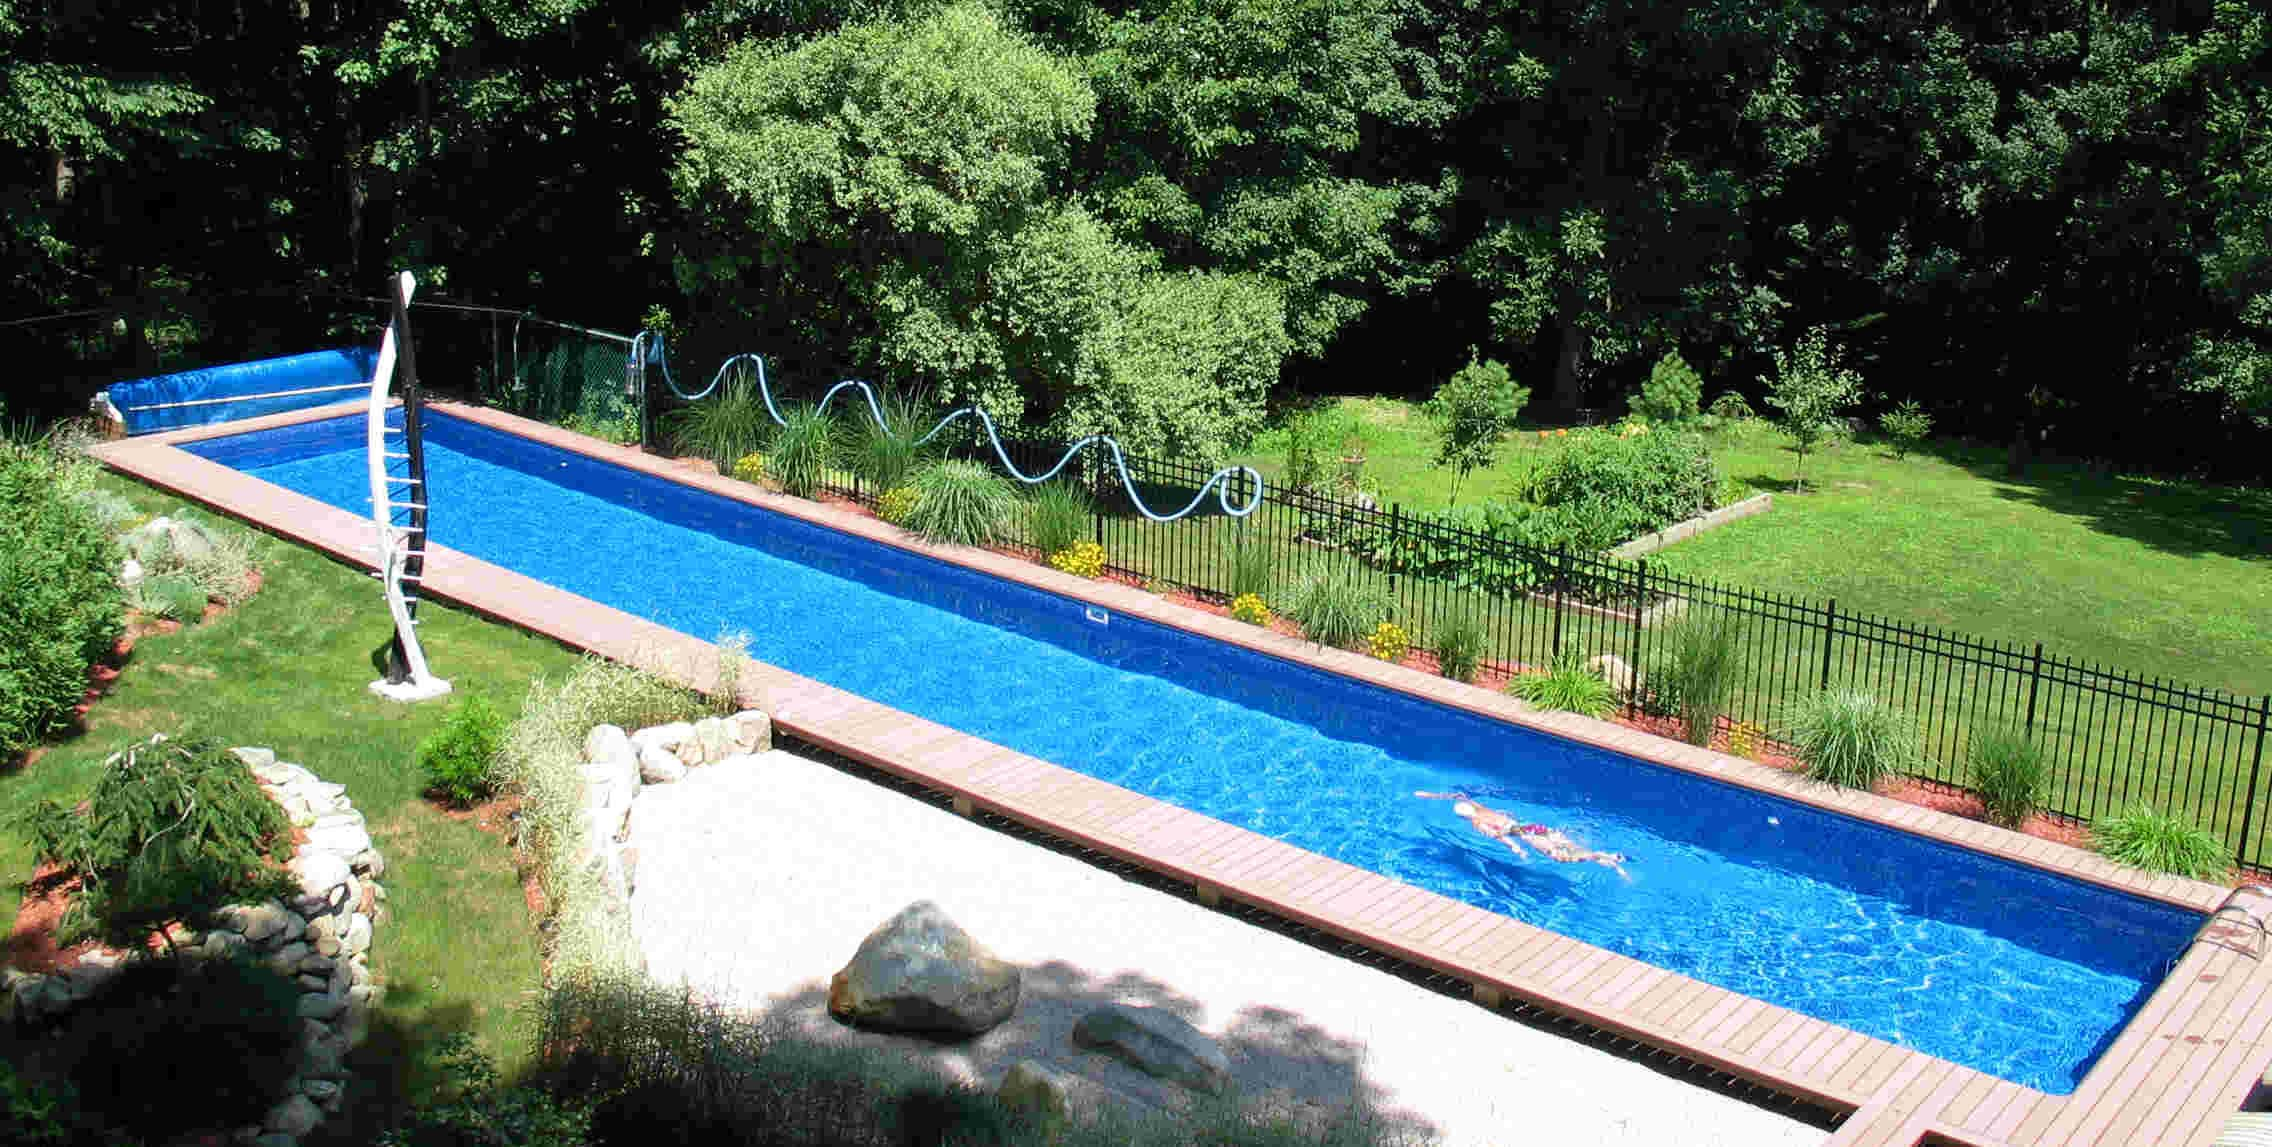 Diy inground swimming pool backyard design ideas for Pictures of swimming pools in backyards